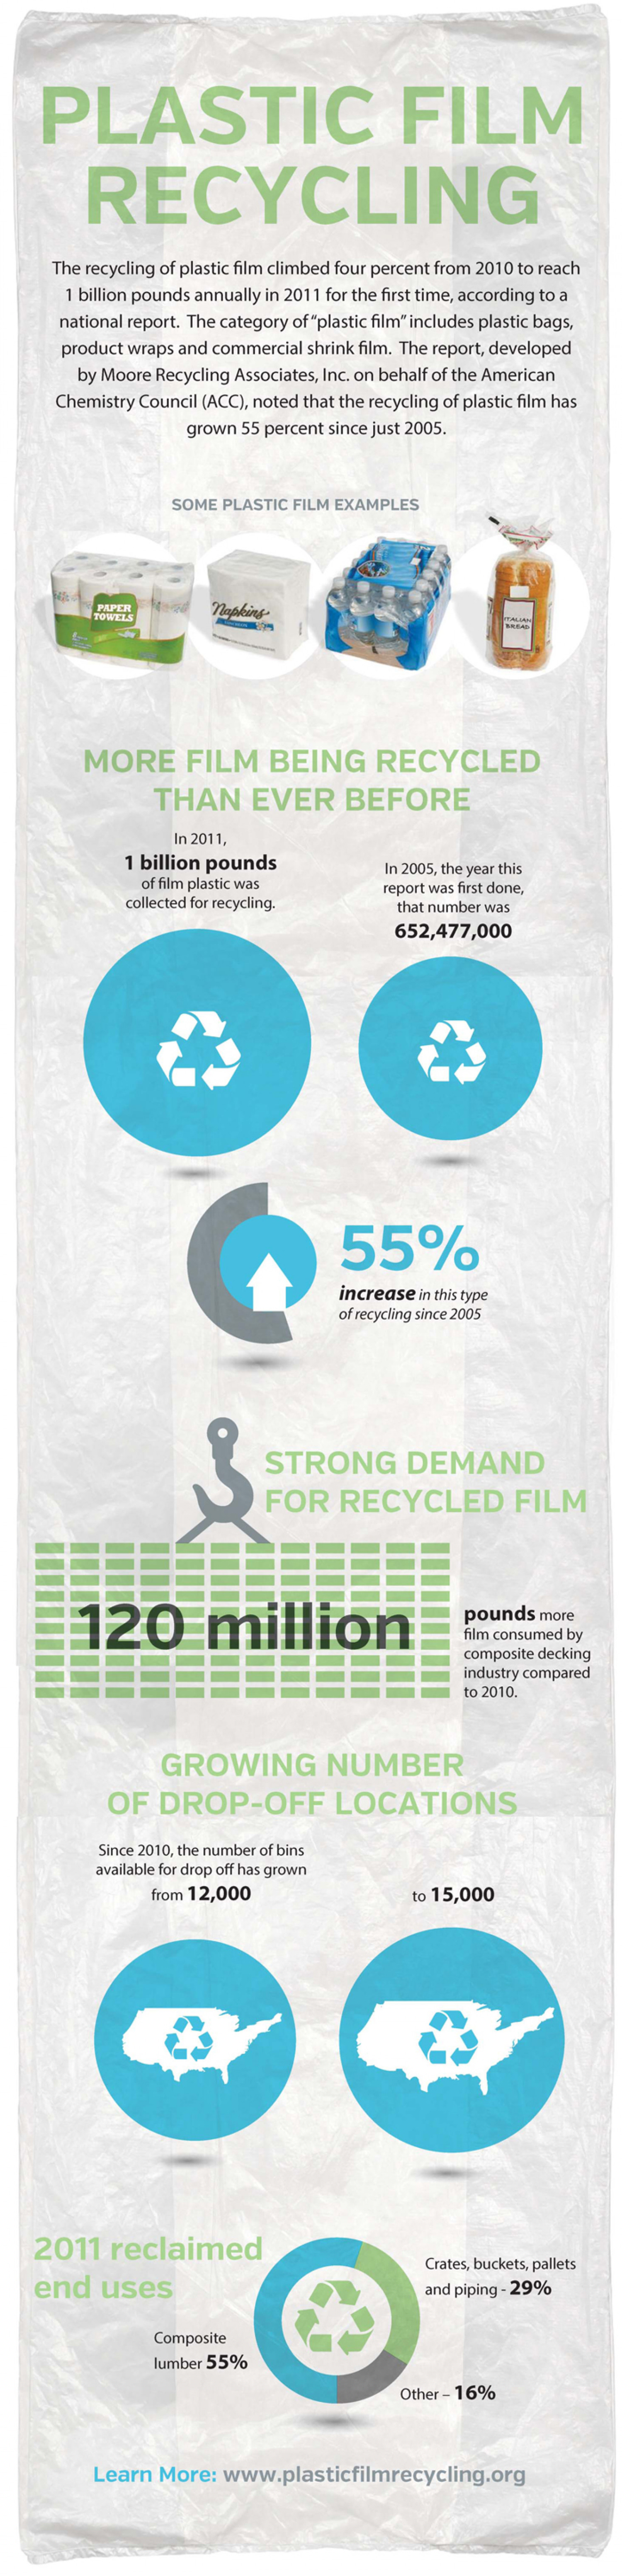 Plastic bag and film recycling reaches 1 billion pounds annually Infographic